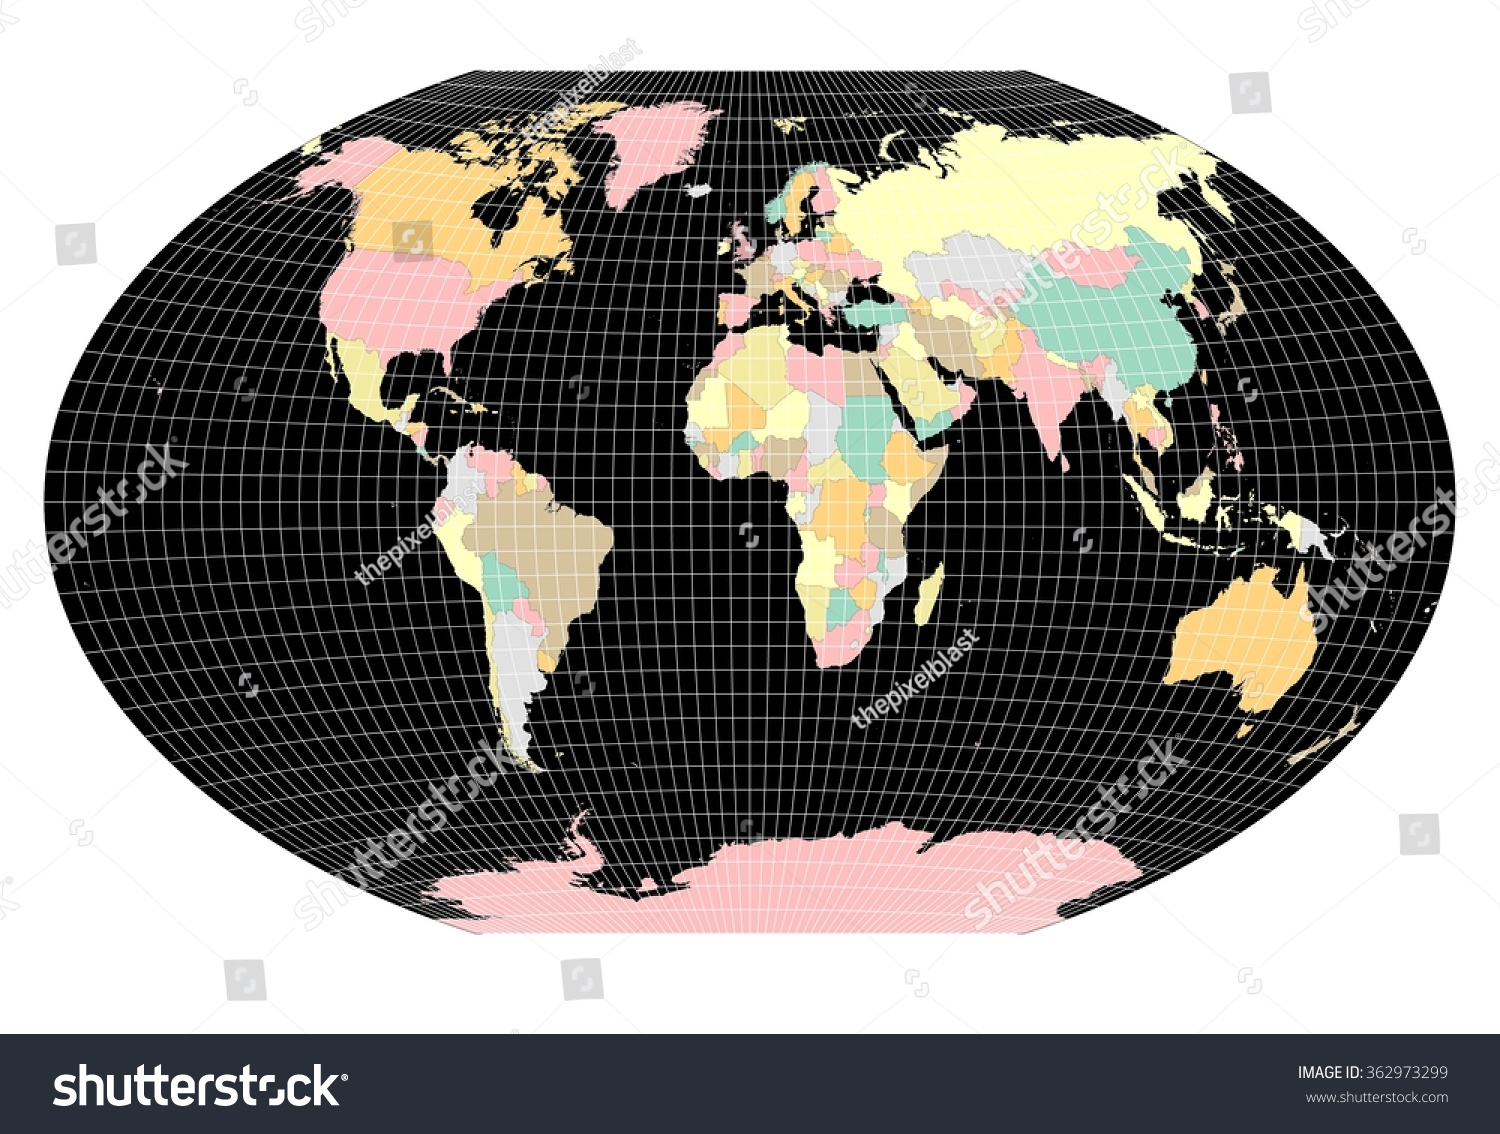 World sphere no country labels white stock illustration 362973299 world sphere no country labels white grid lines black oceans gumiabroncs Choice Image